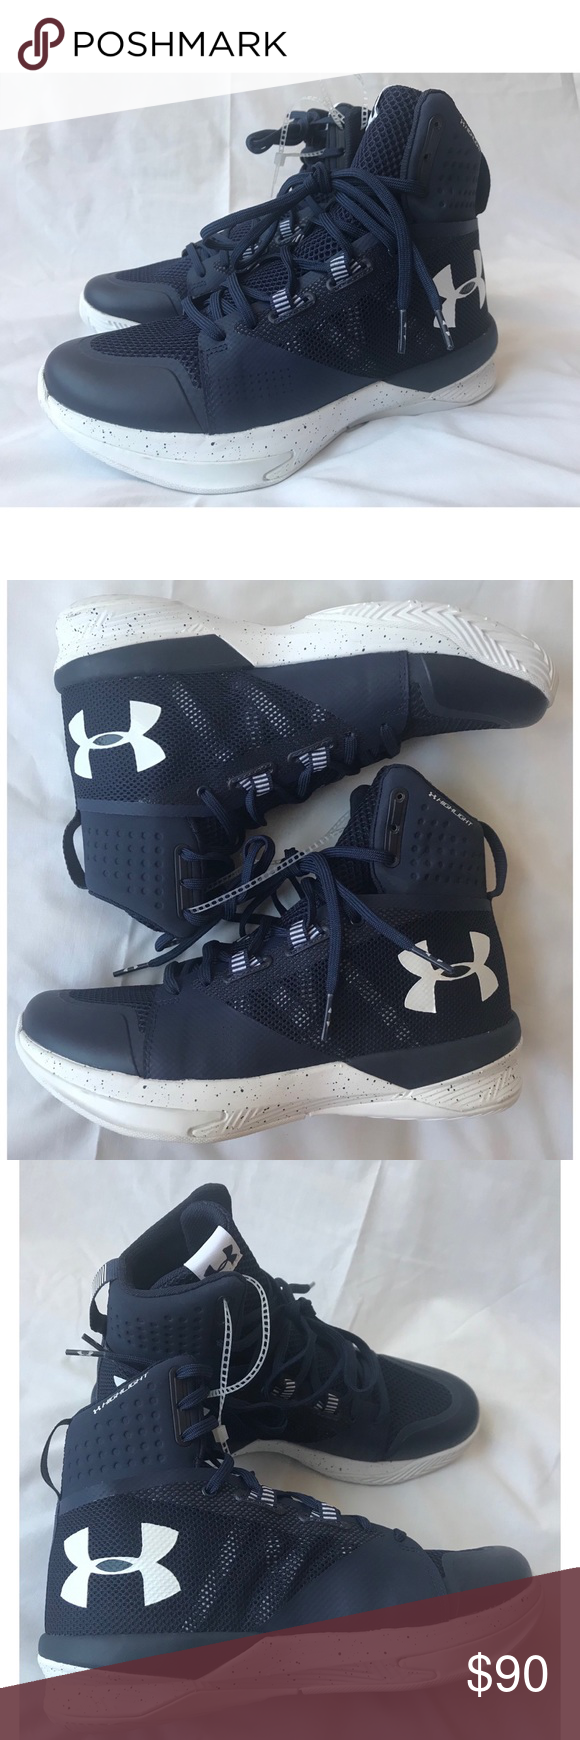 Under Armour Womens Highlight Ace Volleyball Shoes Volleyball Shoes Under Armour Shoes Shoes